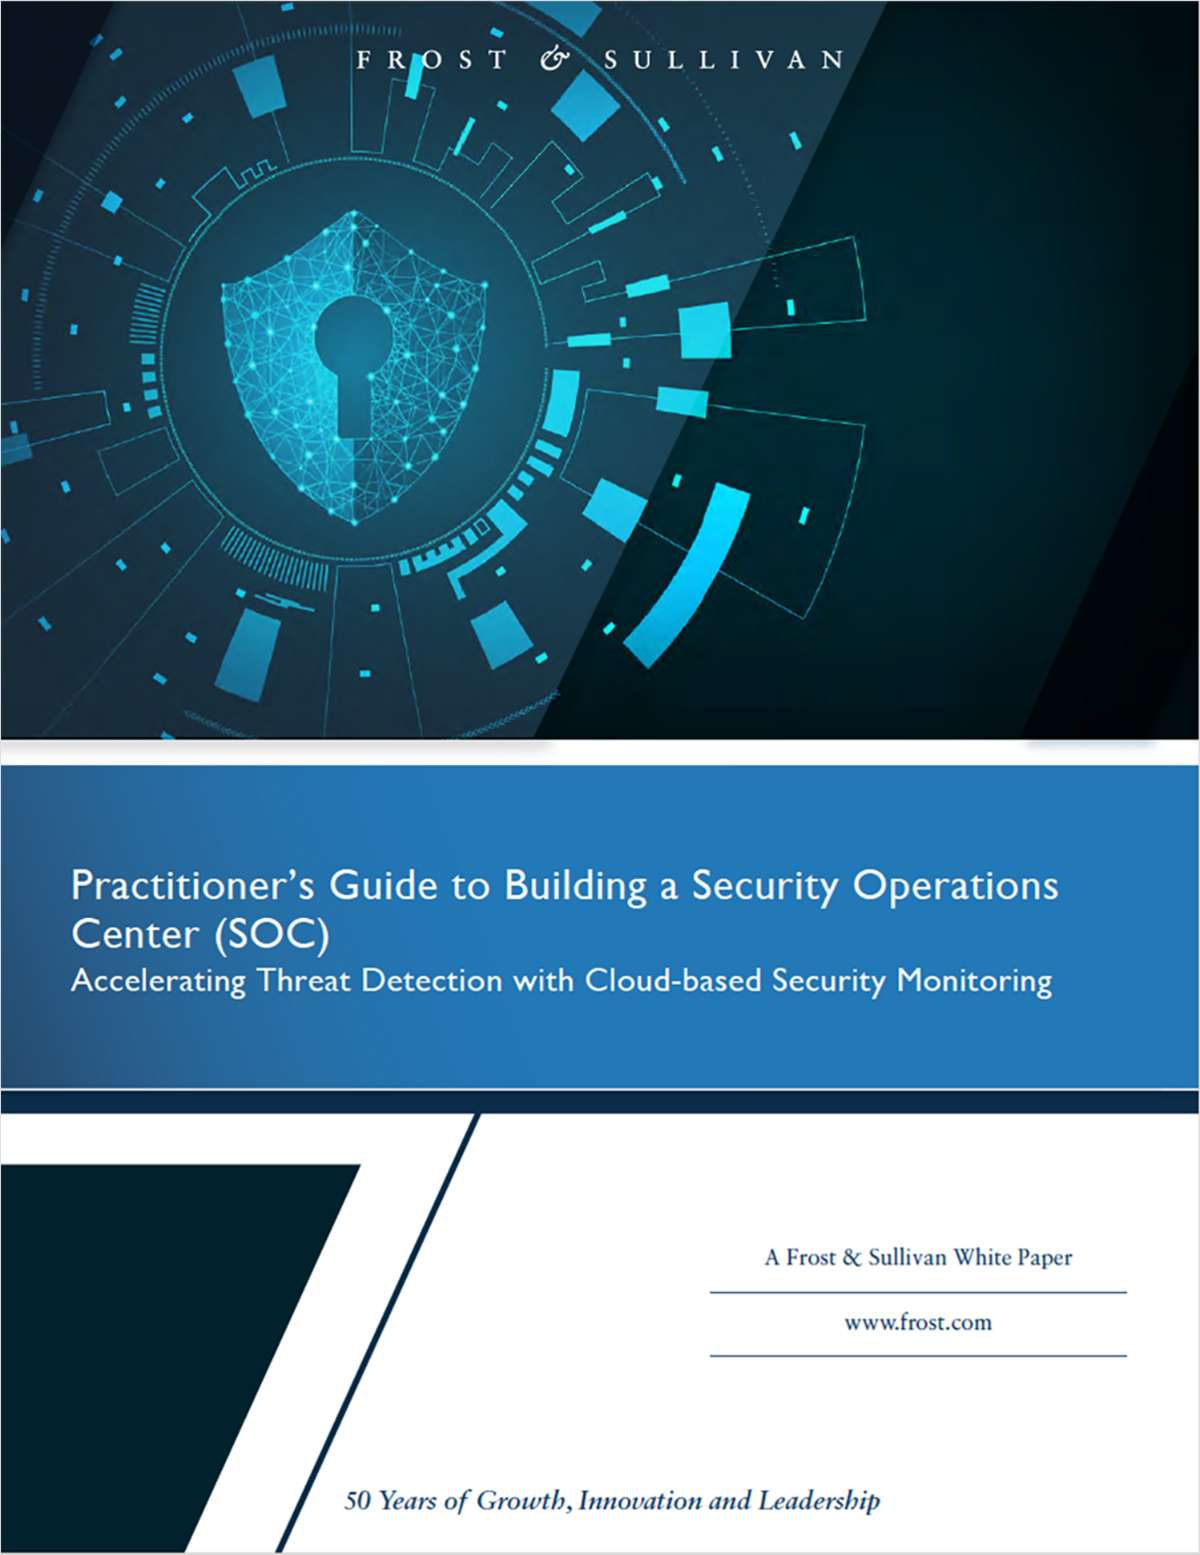 Frost & Sullivan: Practitioner's Guide to Building a Security Operations Center